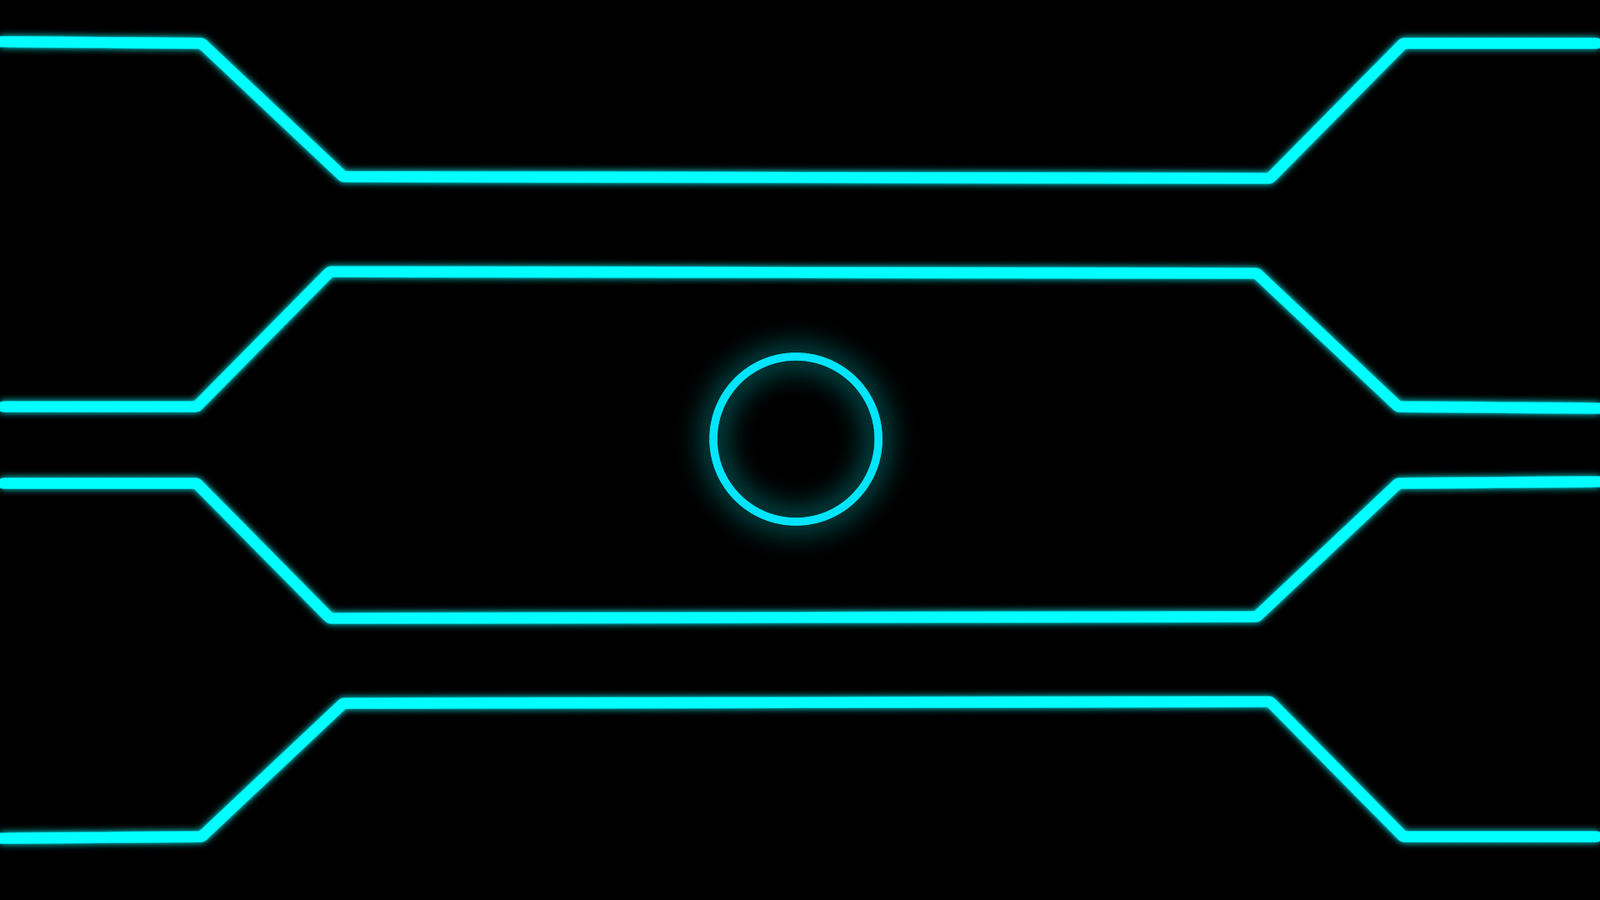 tron wallpaper hd style - photo #22